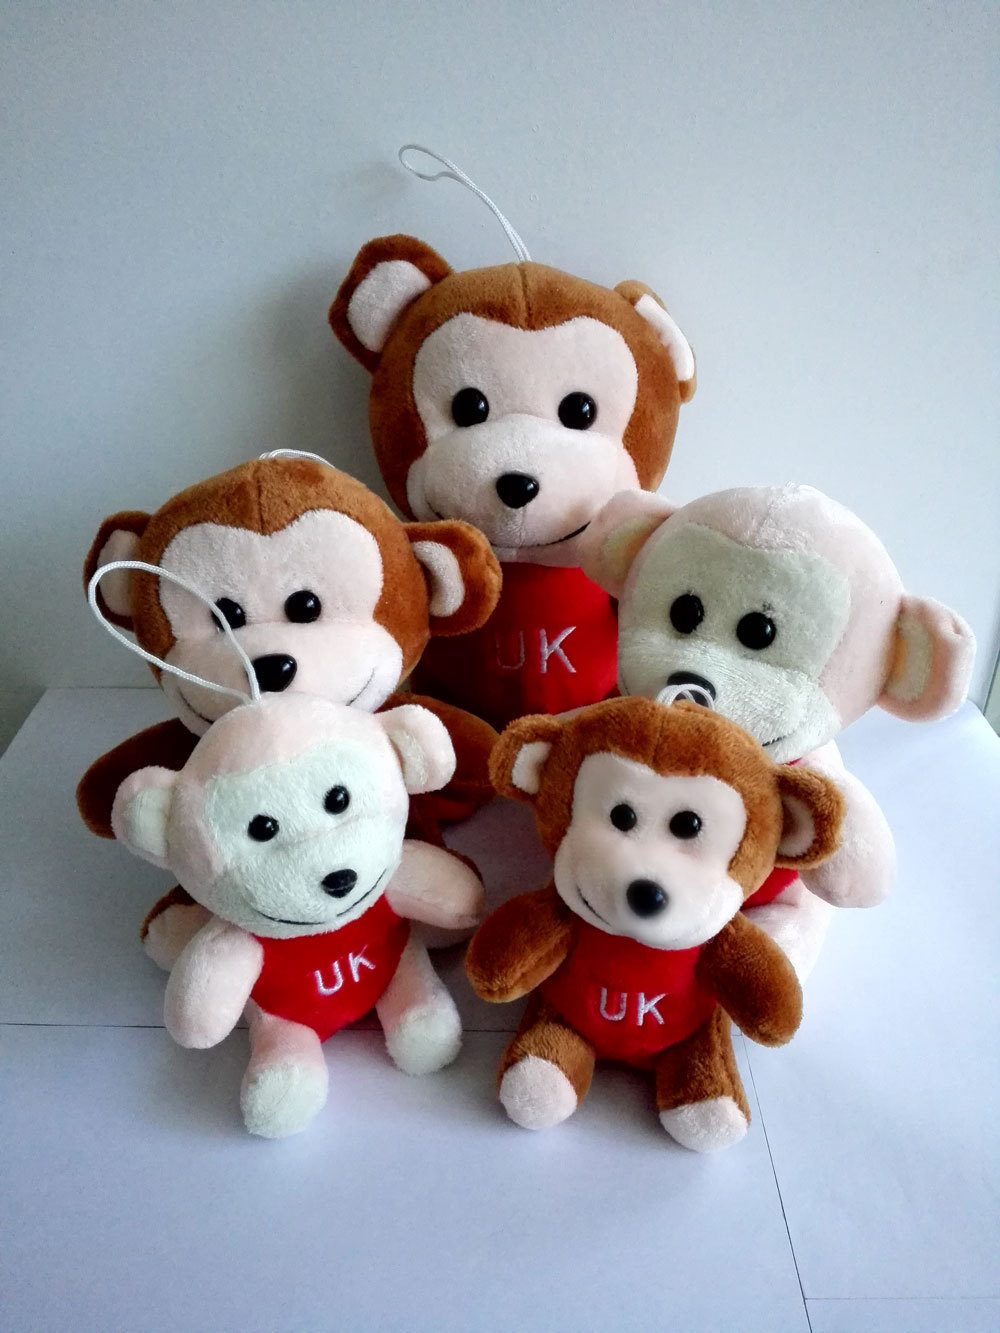 Wholesale Baby Toys : Hot wholesale manufacturers selling high quality stuffed